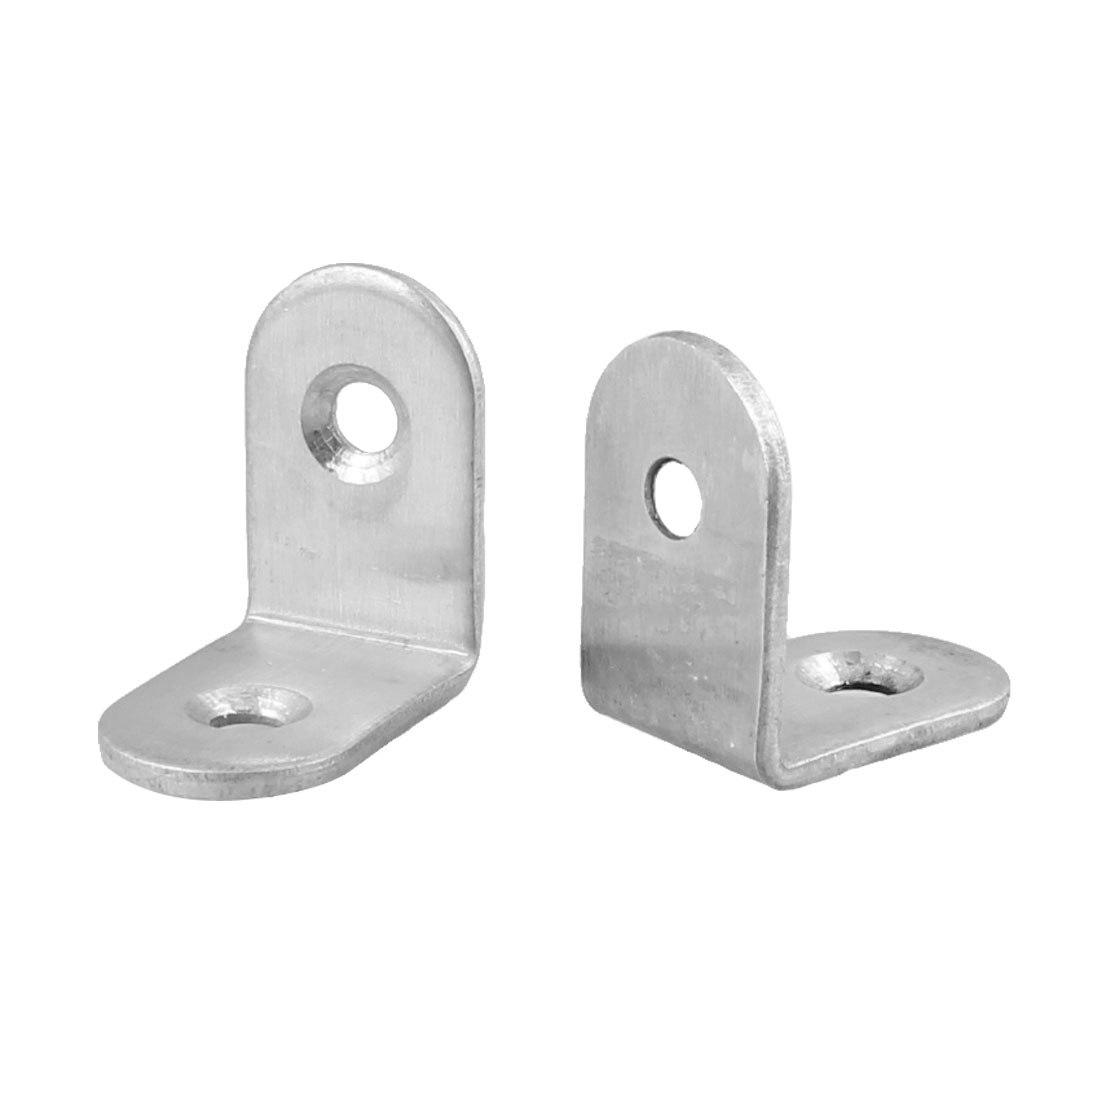 2 Pcs 4mm Mounted Hole Metal 90 Degree Glass Shelf Holder Support